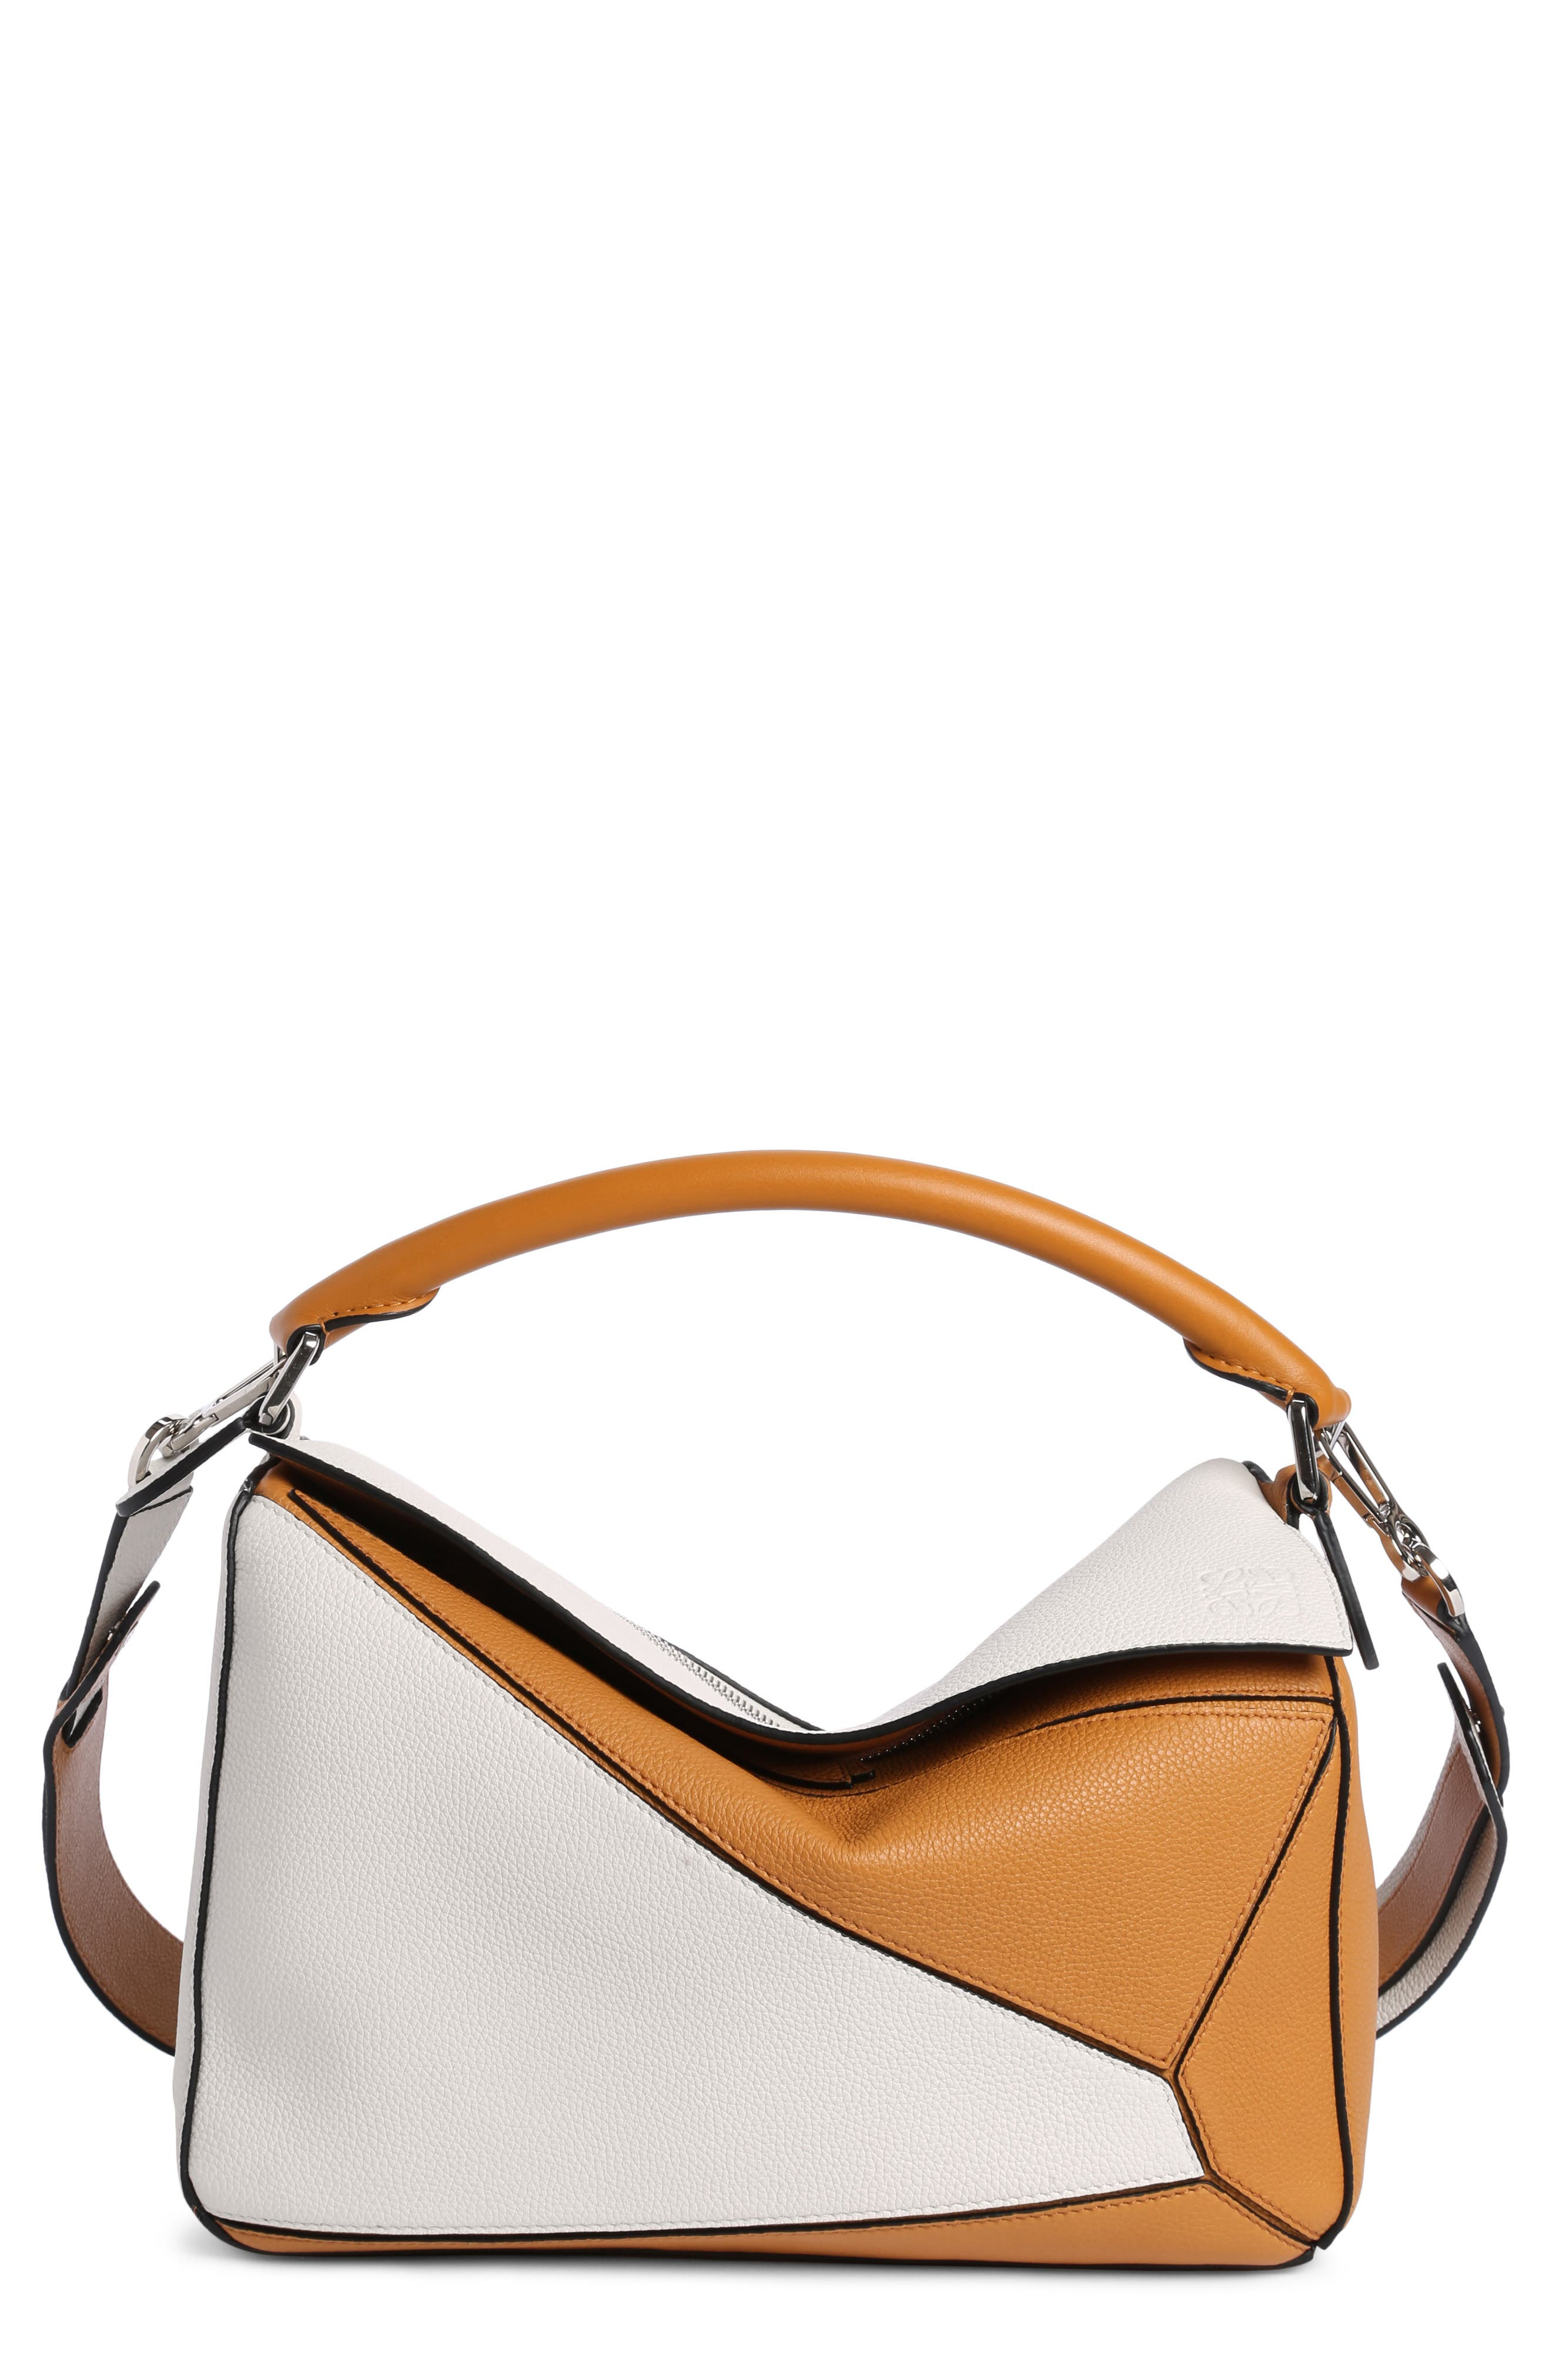 Loewe Puzzle Colorblock Calfskin Leather Bag